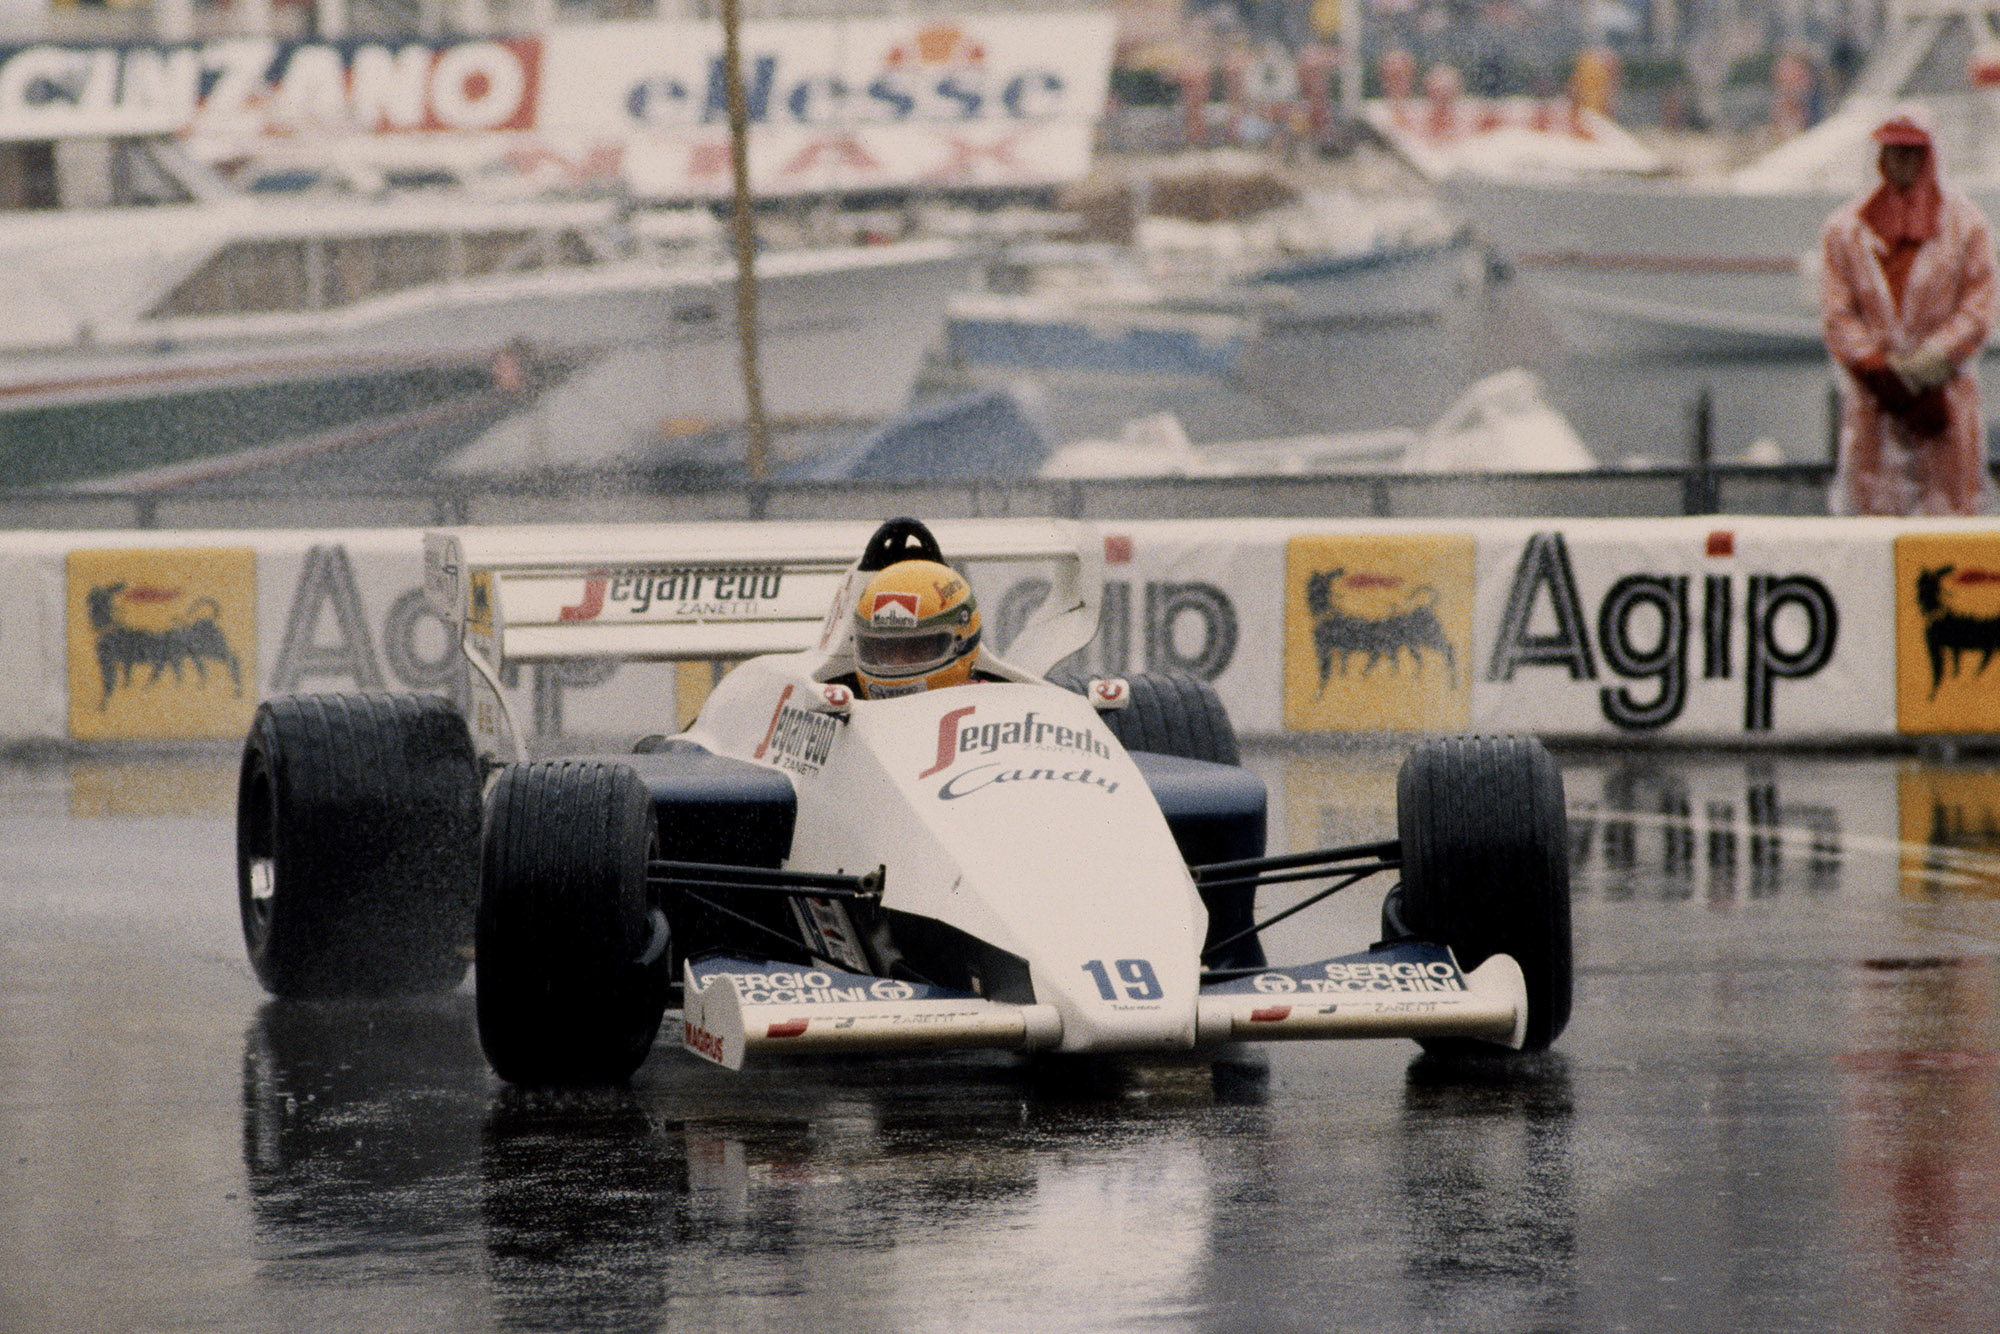 Senna chases down Prost in. his Toleman at the 1984 Monaco Grand Prix